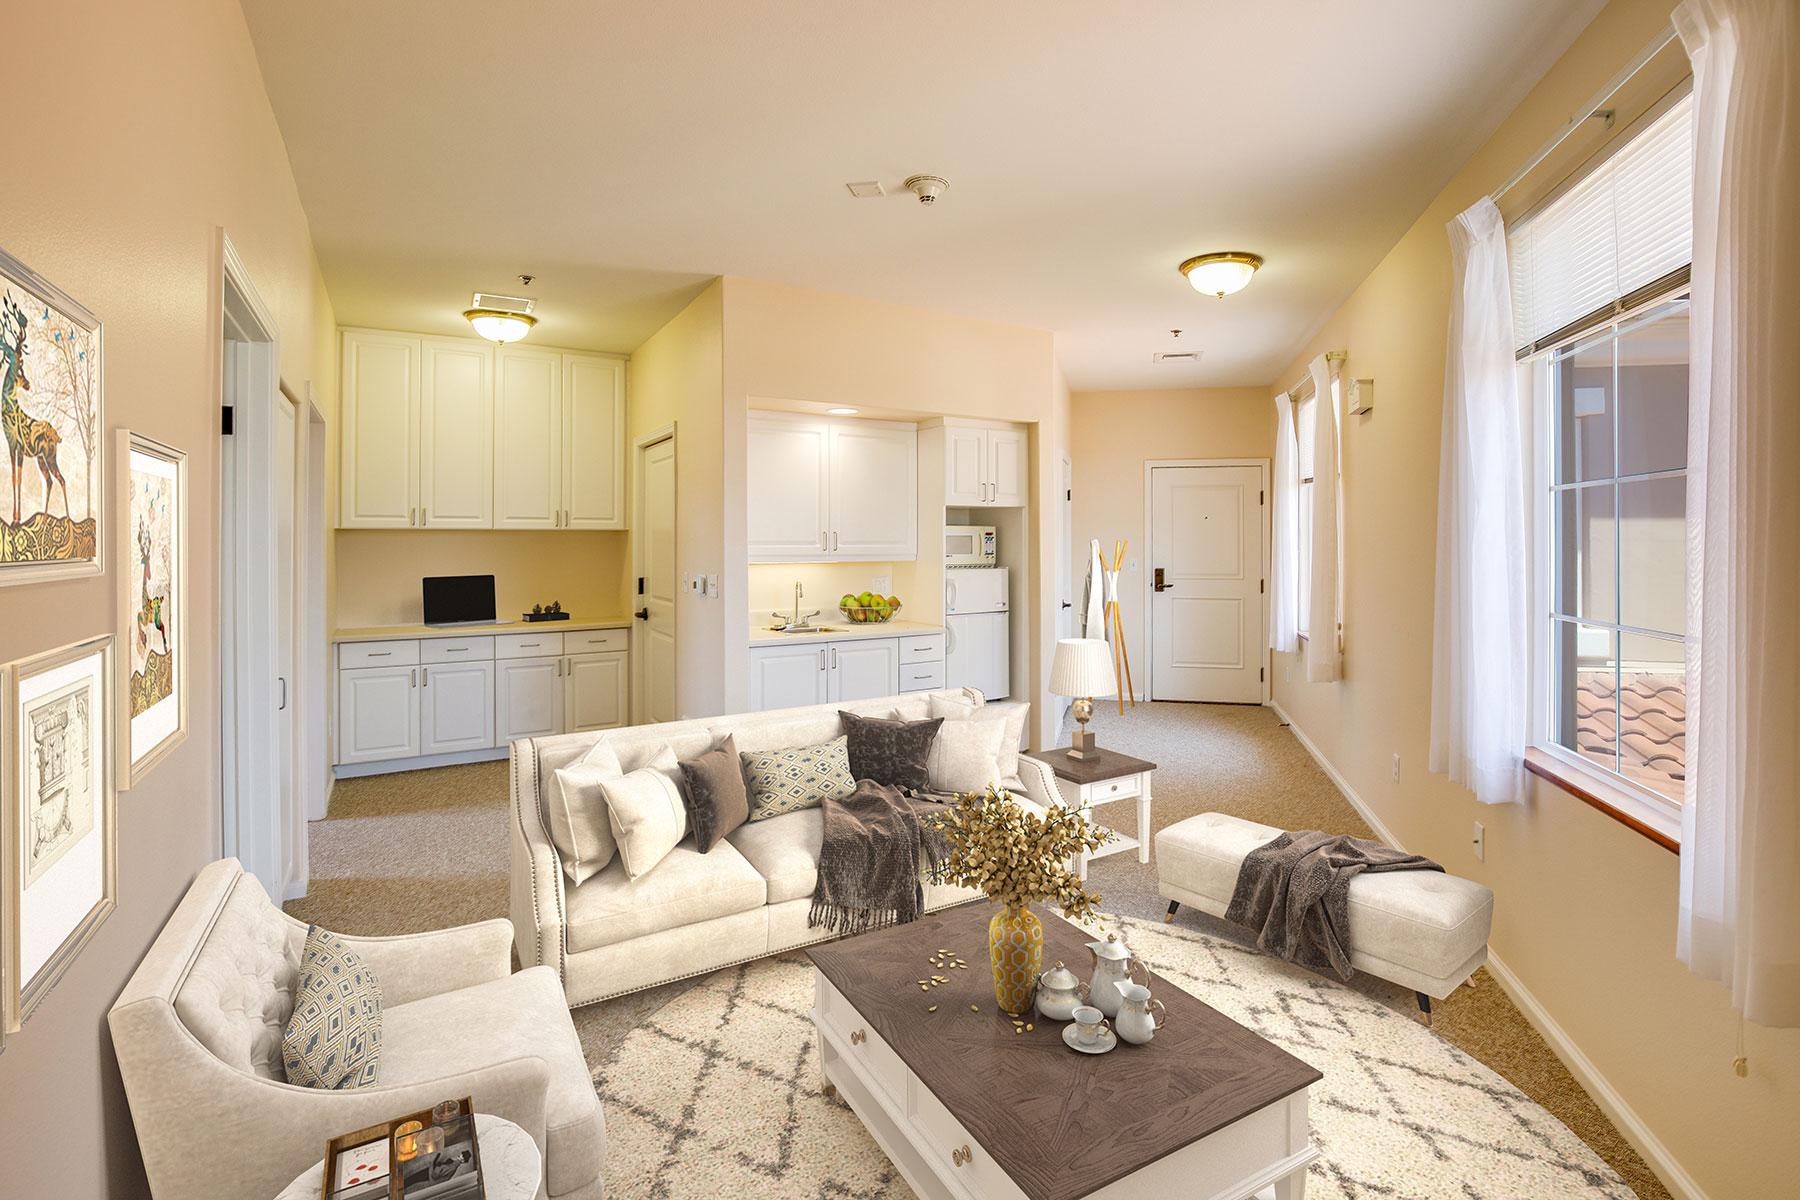 Assisted Living living room space.